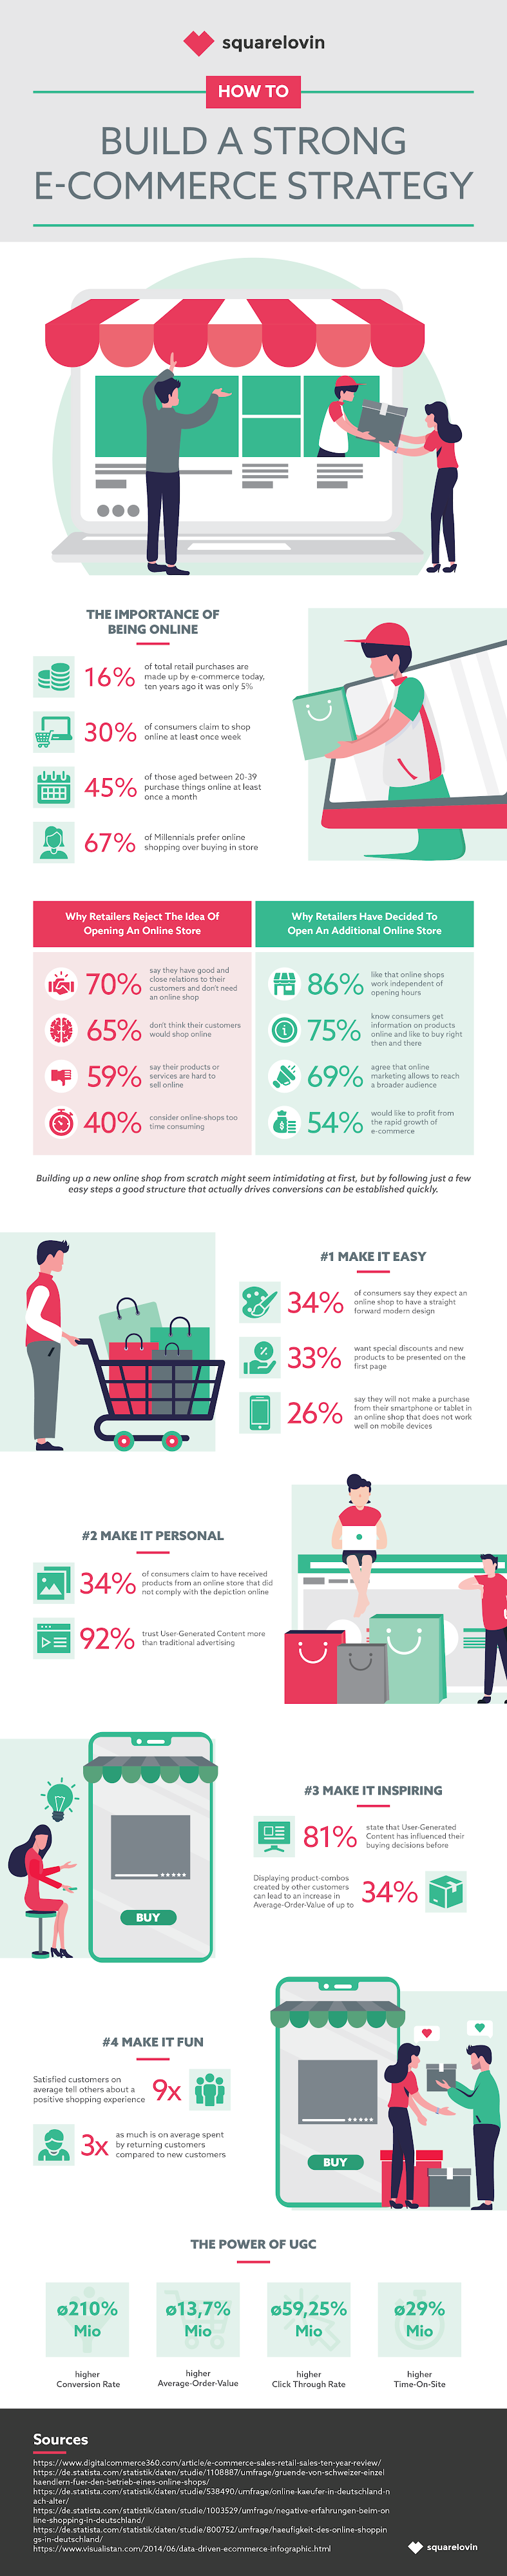 How to Build a Strong eCommerce Strategy #infographic